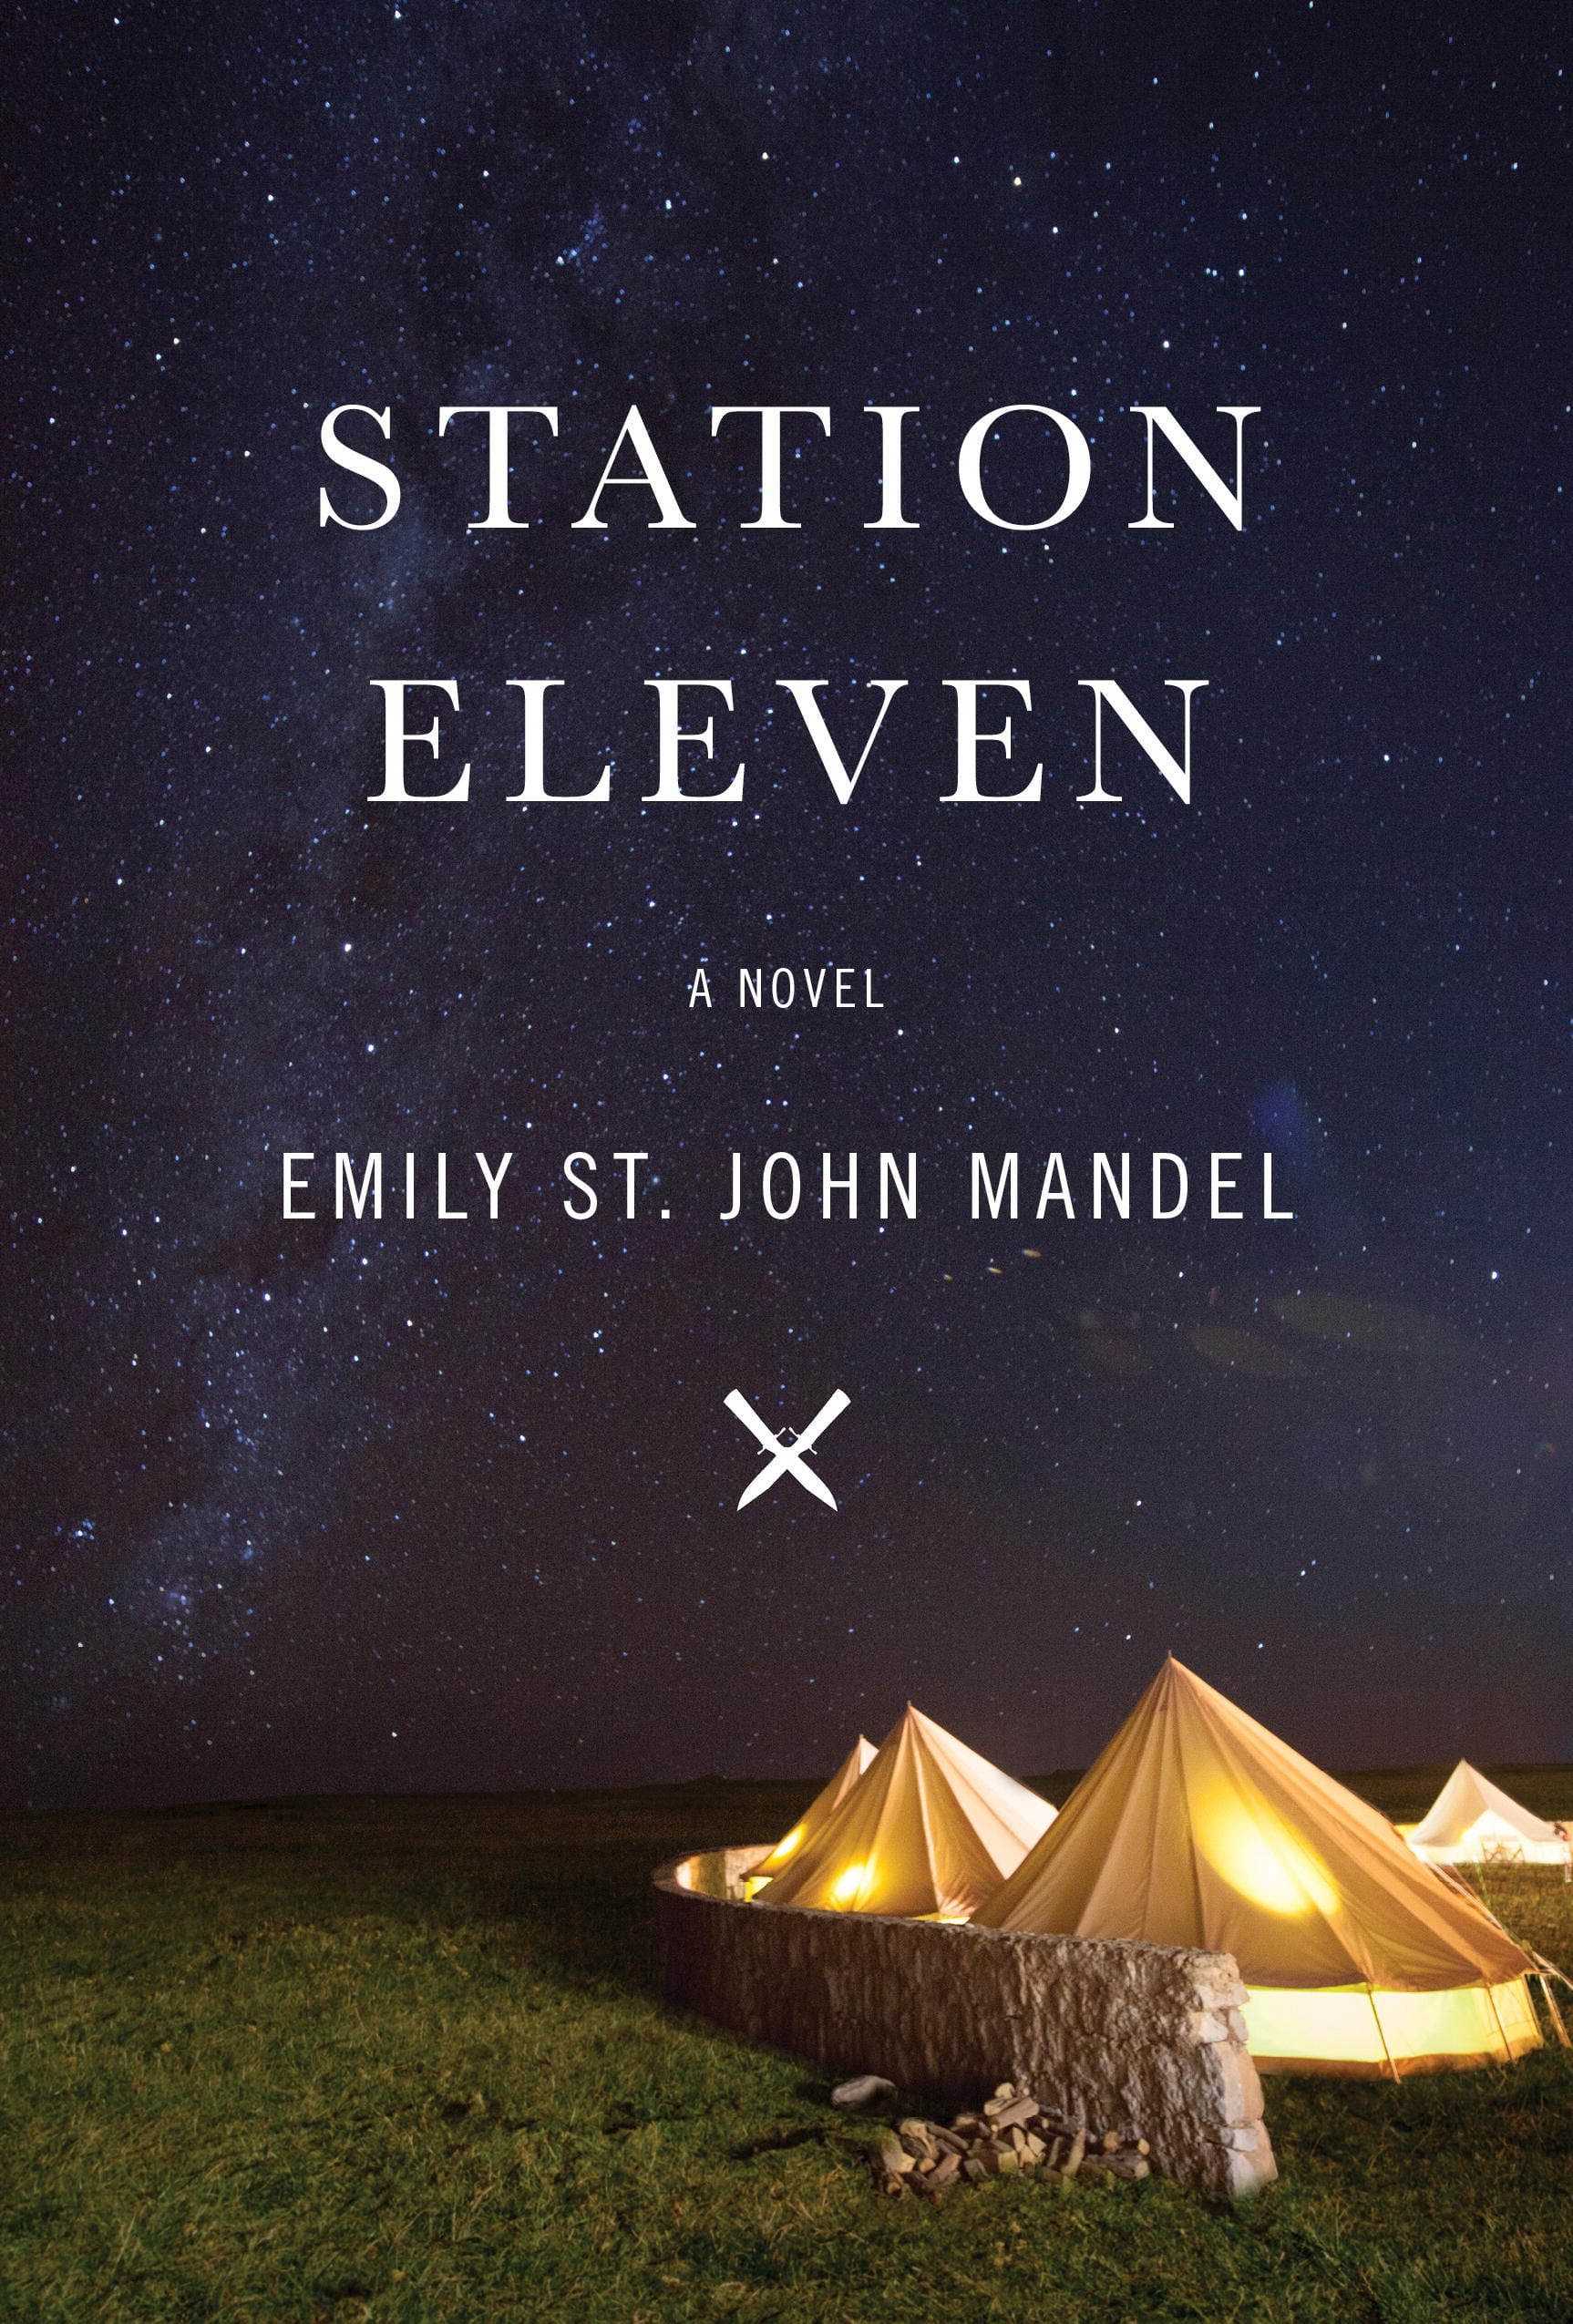 Station Eleven by Emily St. John Mandel, North American cover